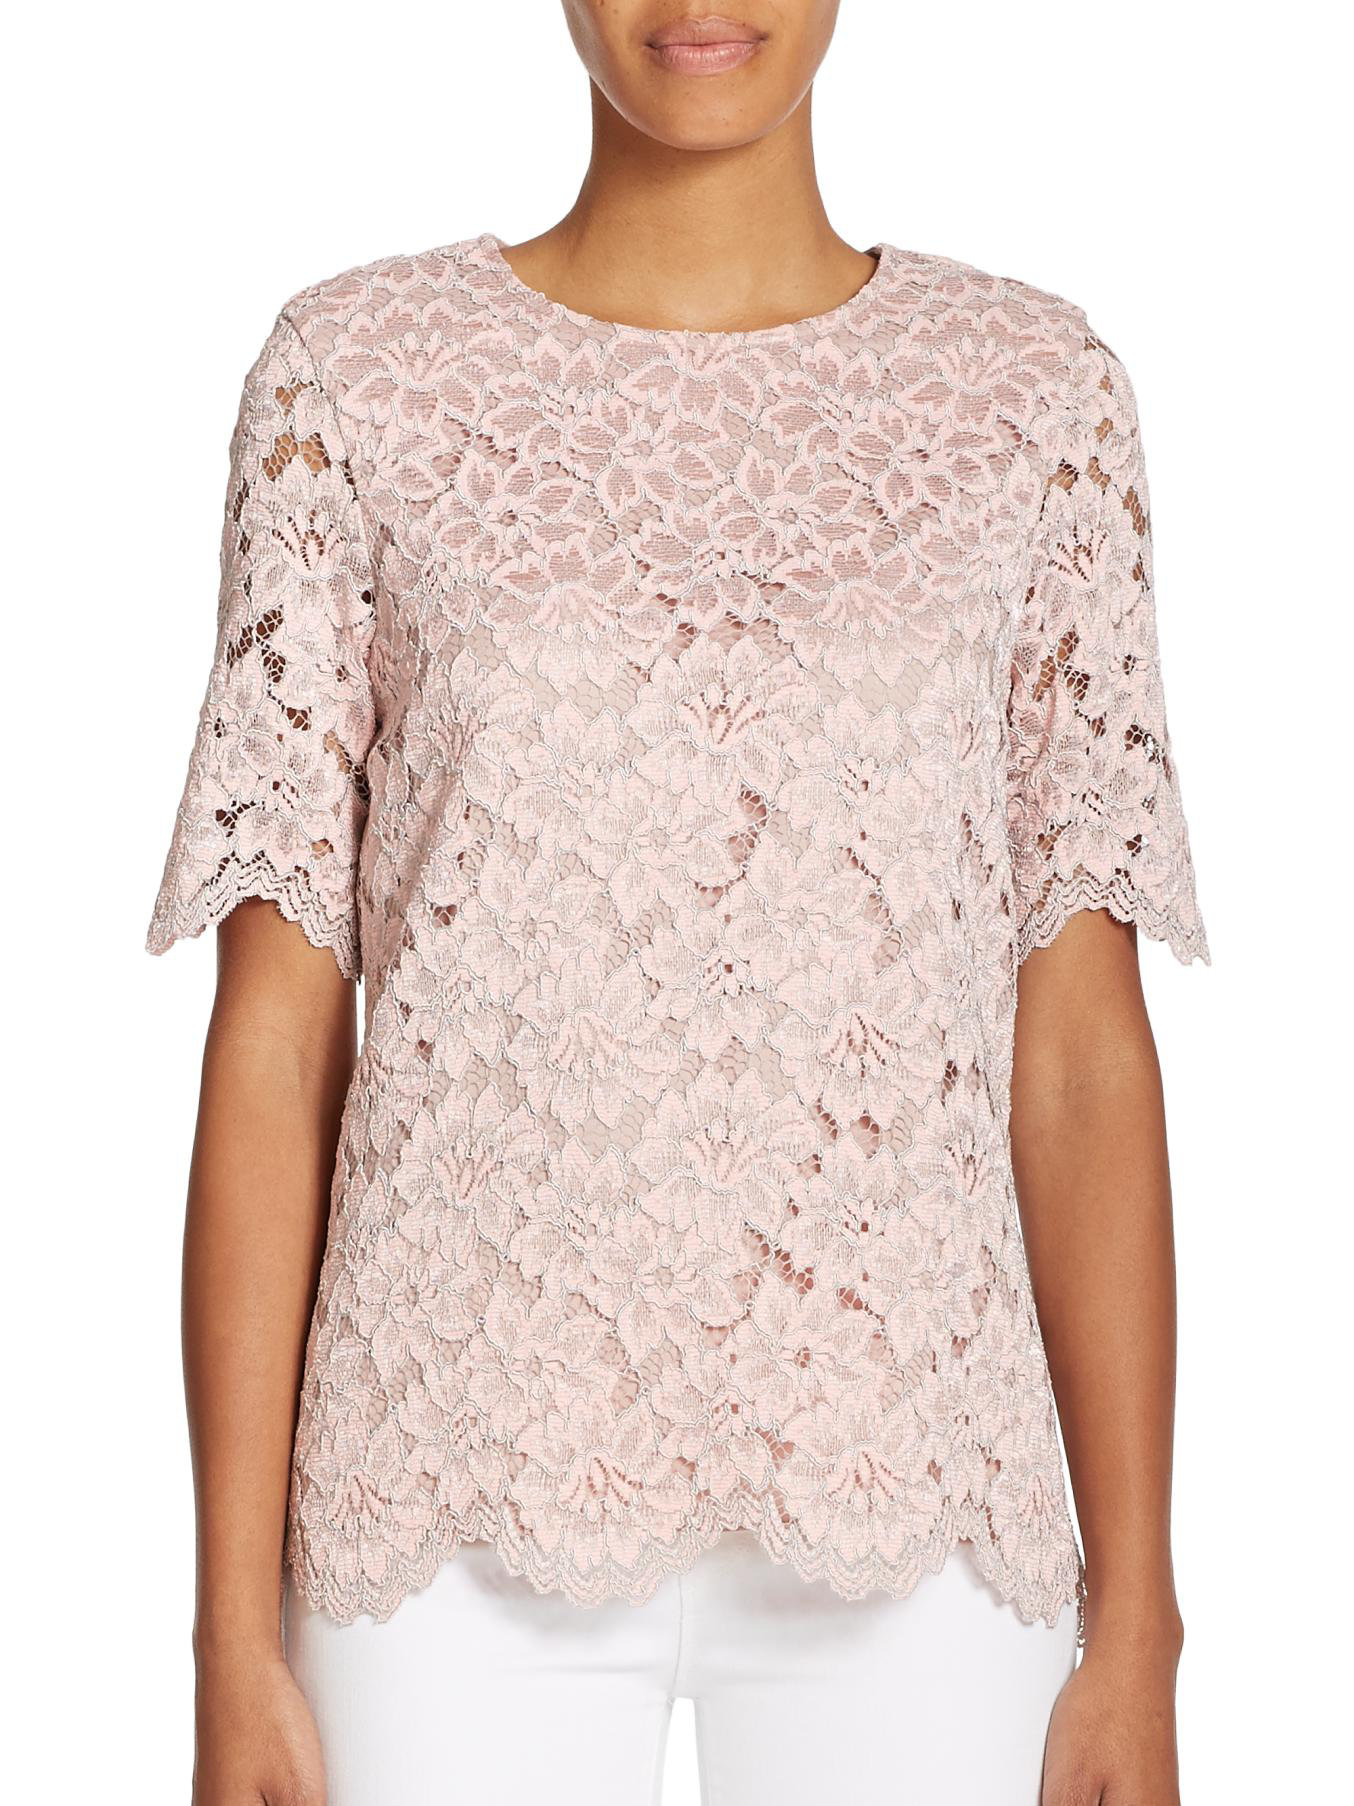 Lyst - Alexis Iris Lace Top in Pink